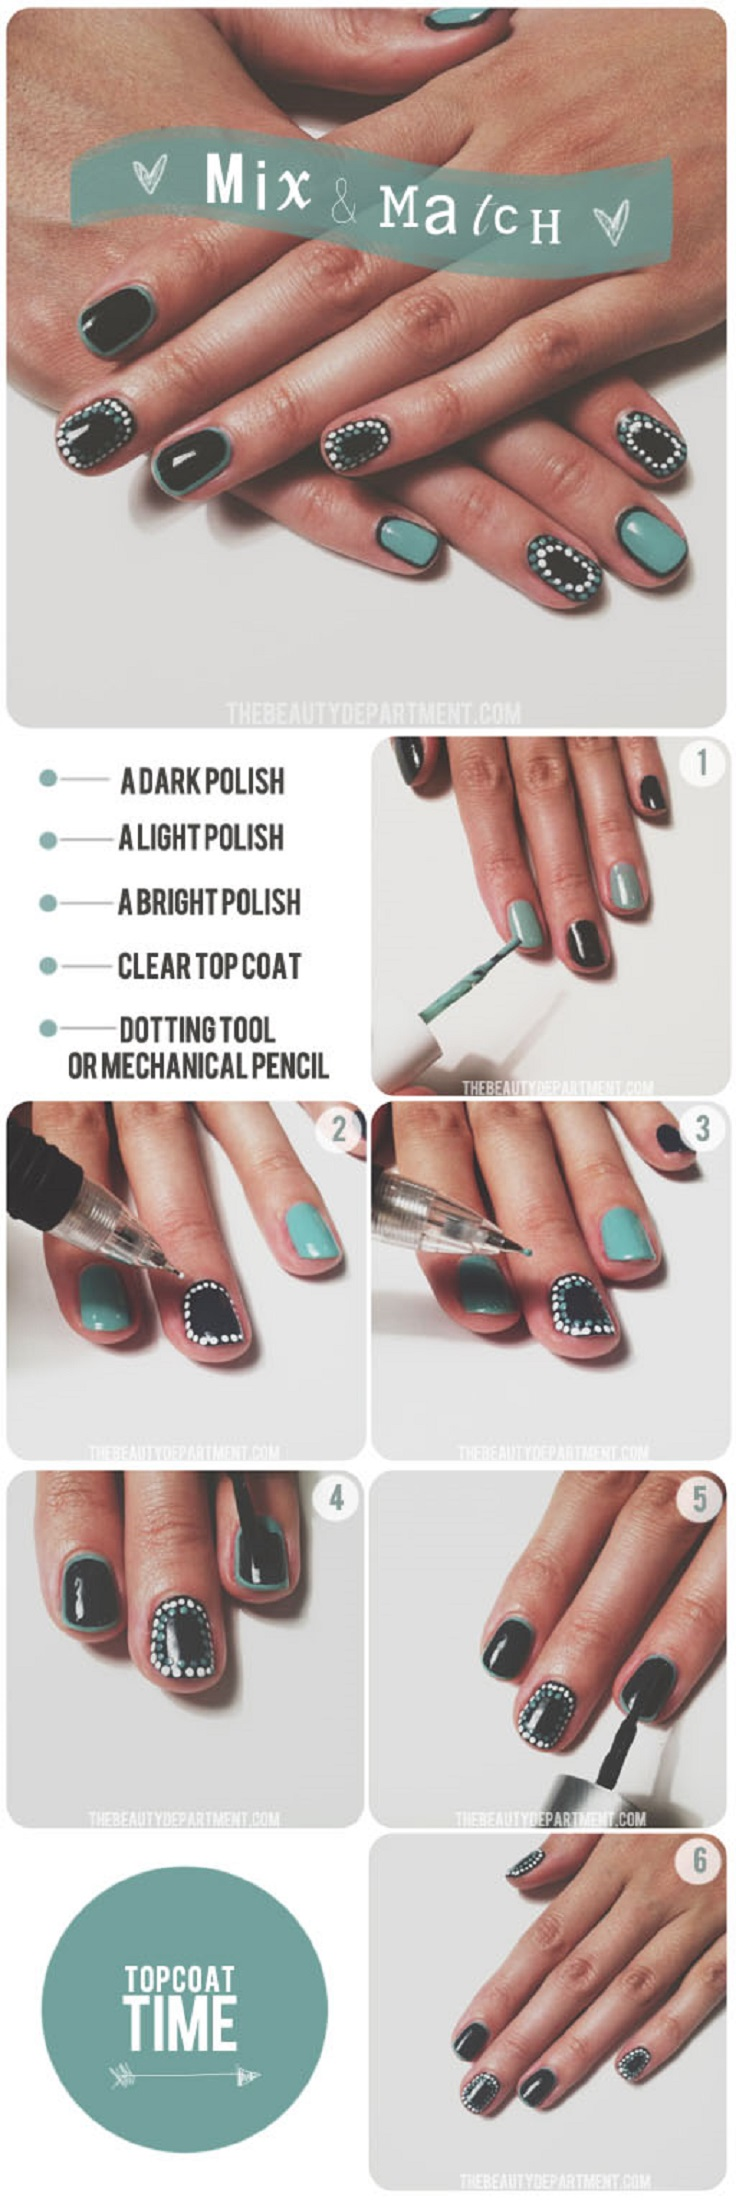 mix-and-match-nail-tutorial